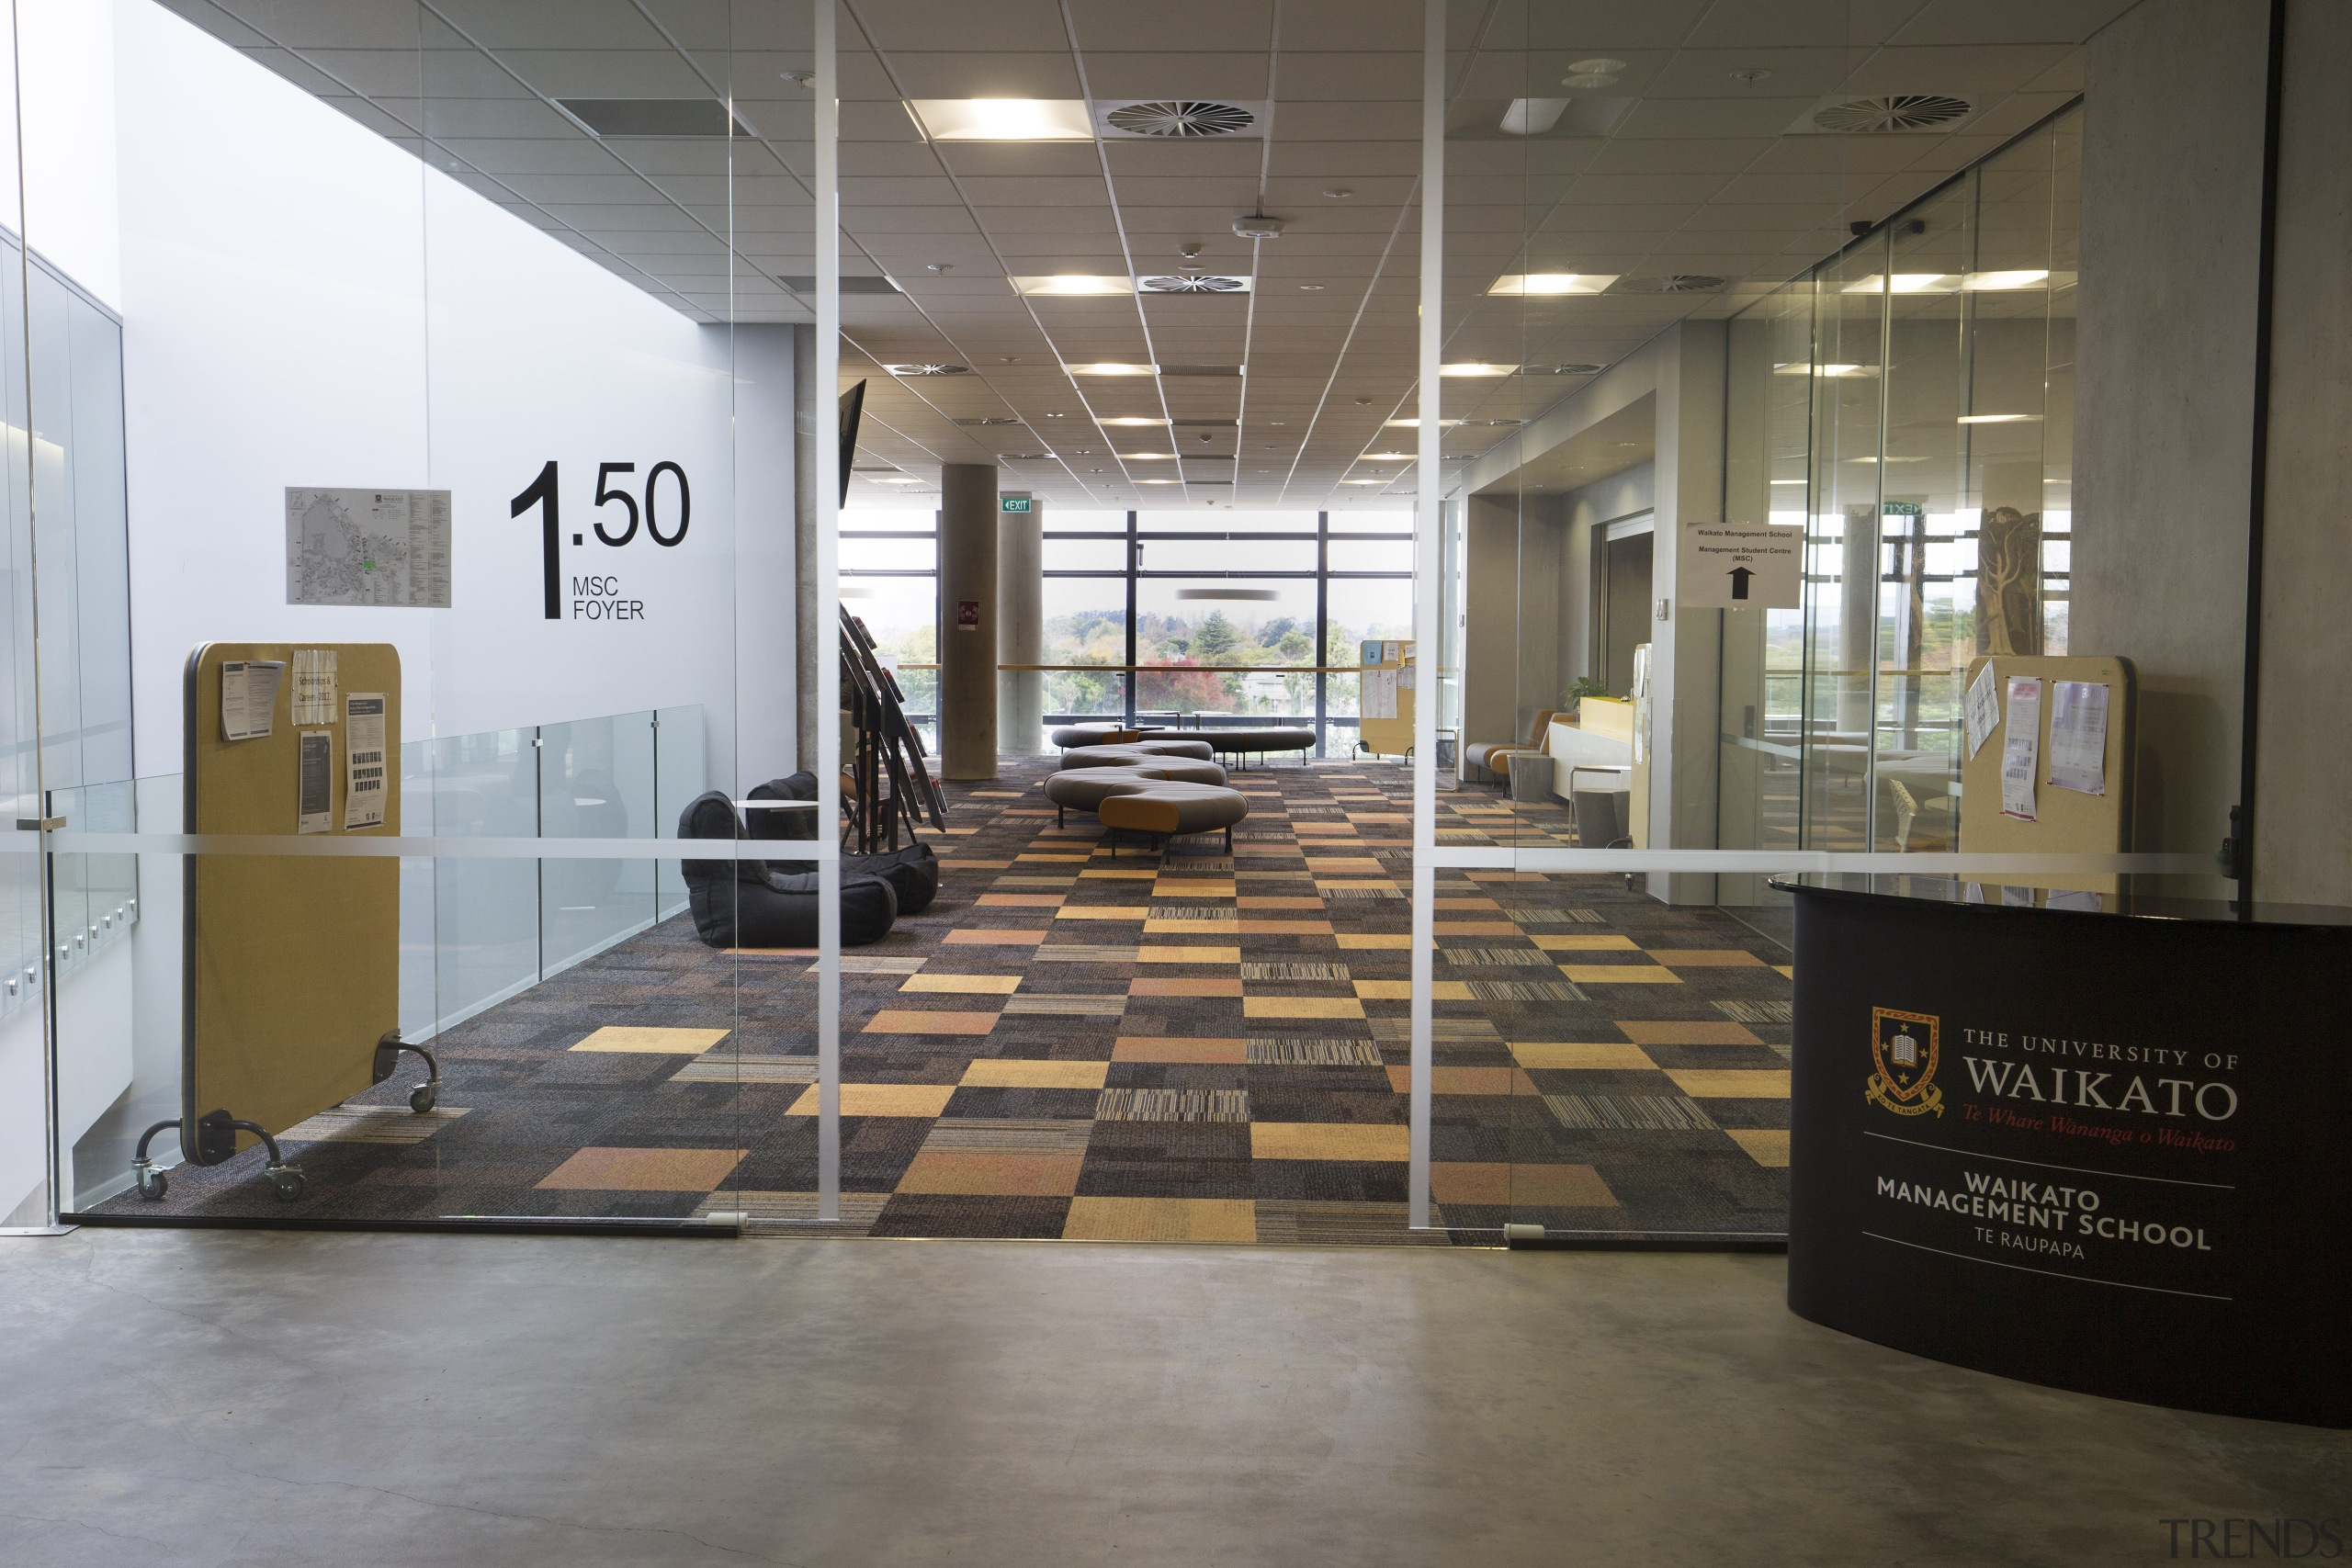 A long look out from the podium section exhibition, floor, flooring, interior design, lobby, tile, gray